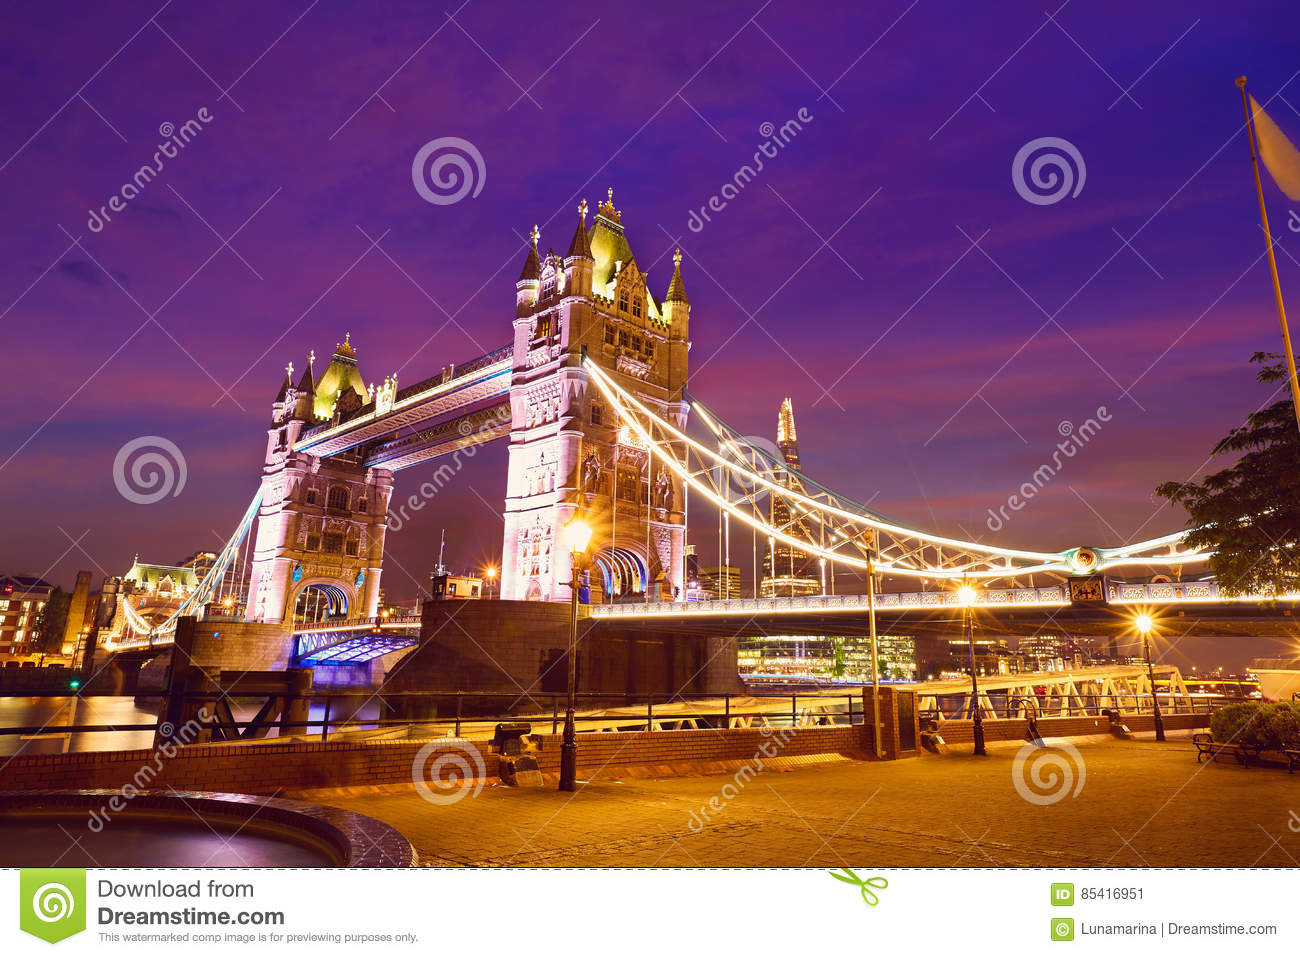 Download London Tower Bridge Sunset On Thames River Stock Image - Image of island, city: 85416951